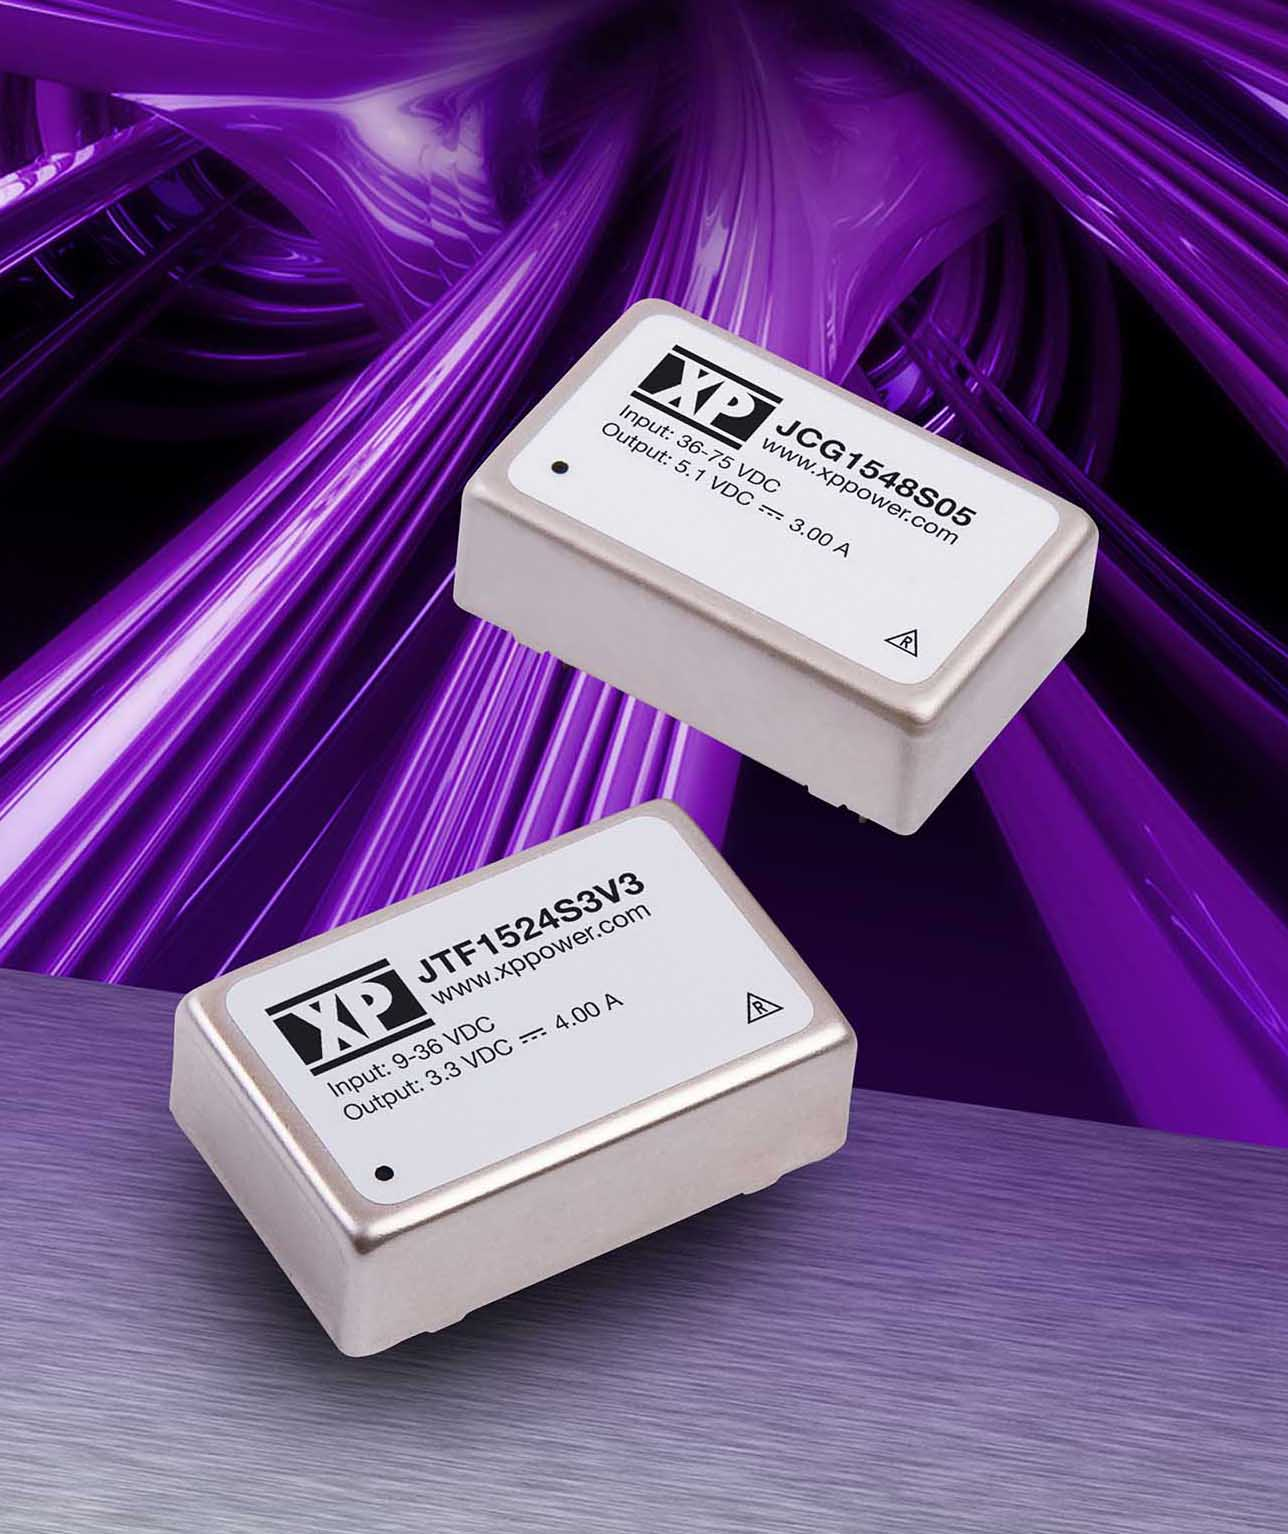 XP Power release 15 Watt DIP24 DC-DC Converters with either 2:1 or 4:1 input ranges